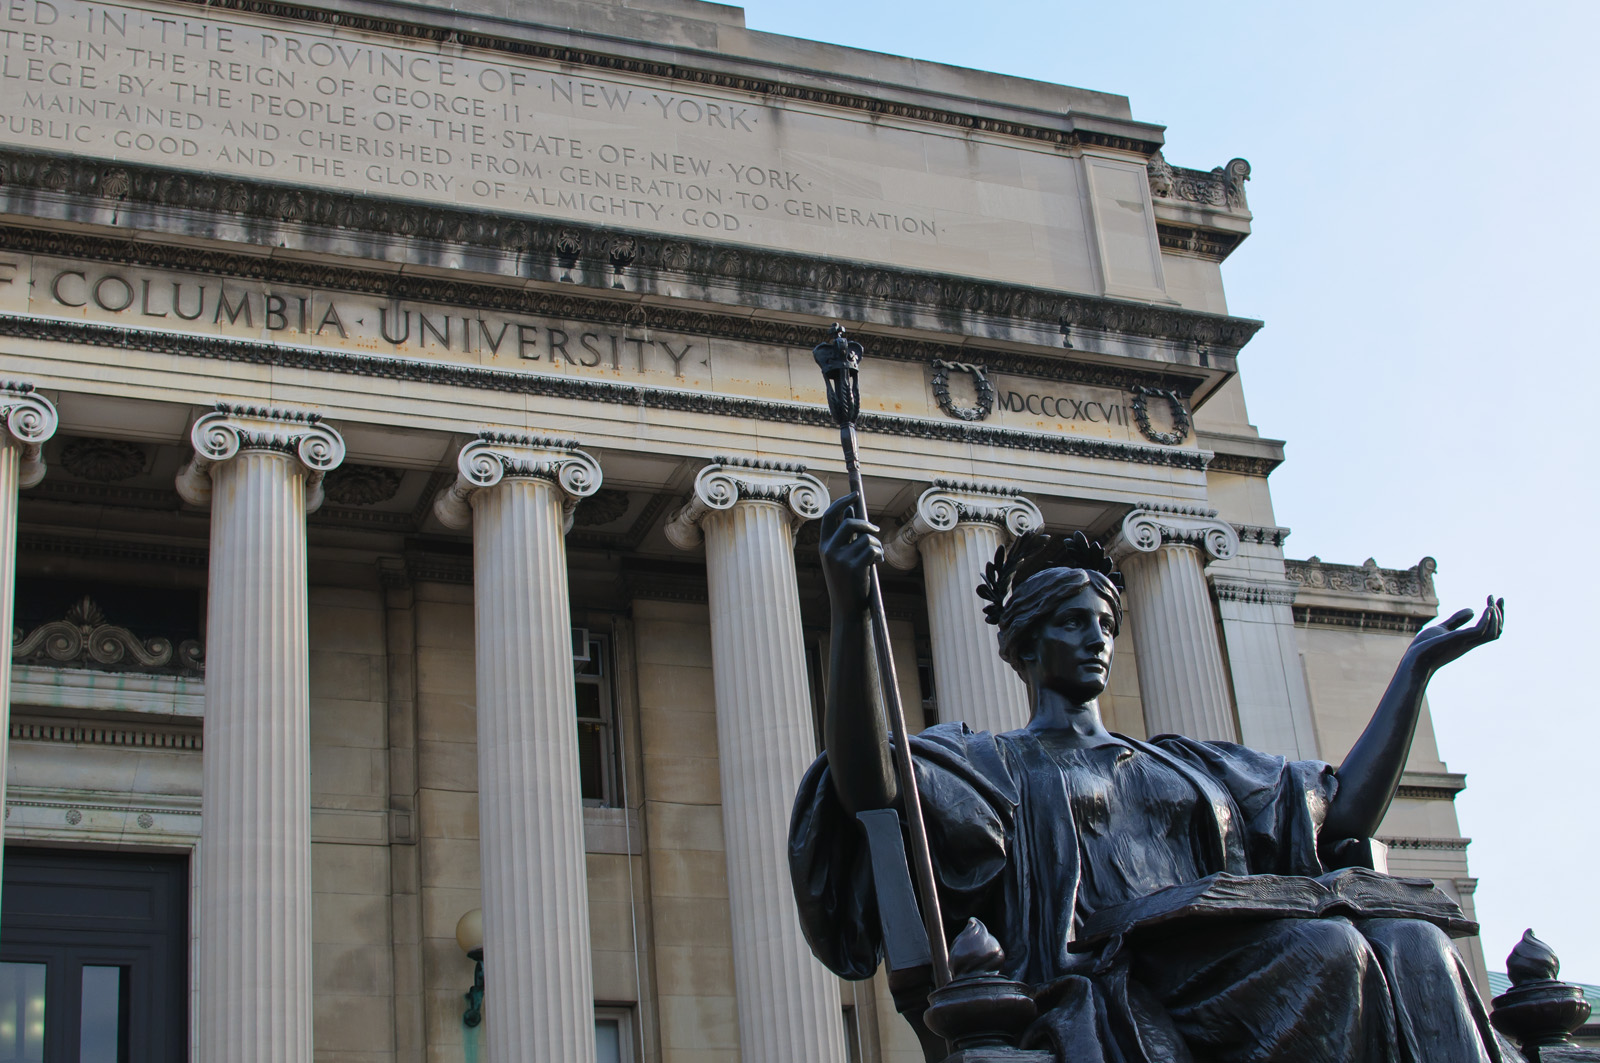 An overview of the history of columbia